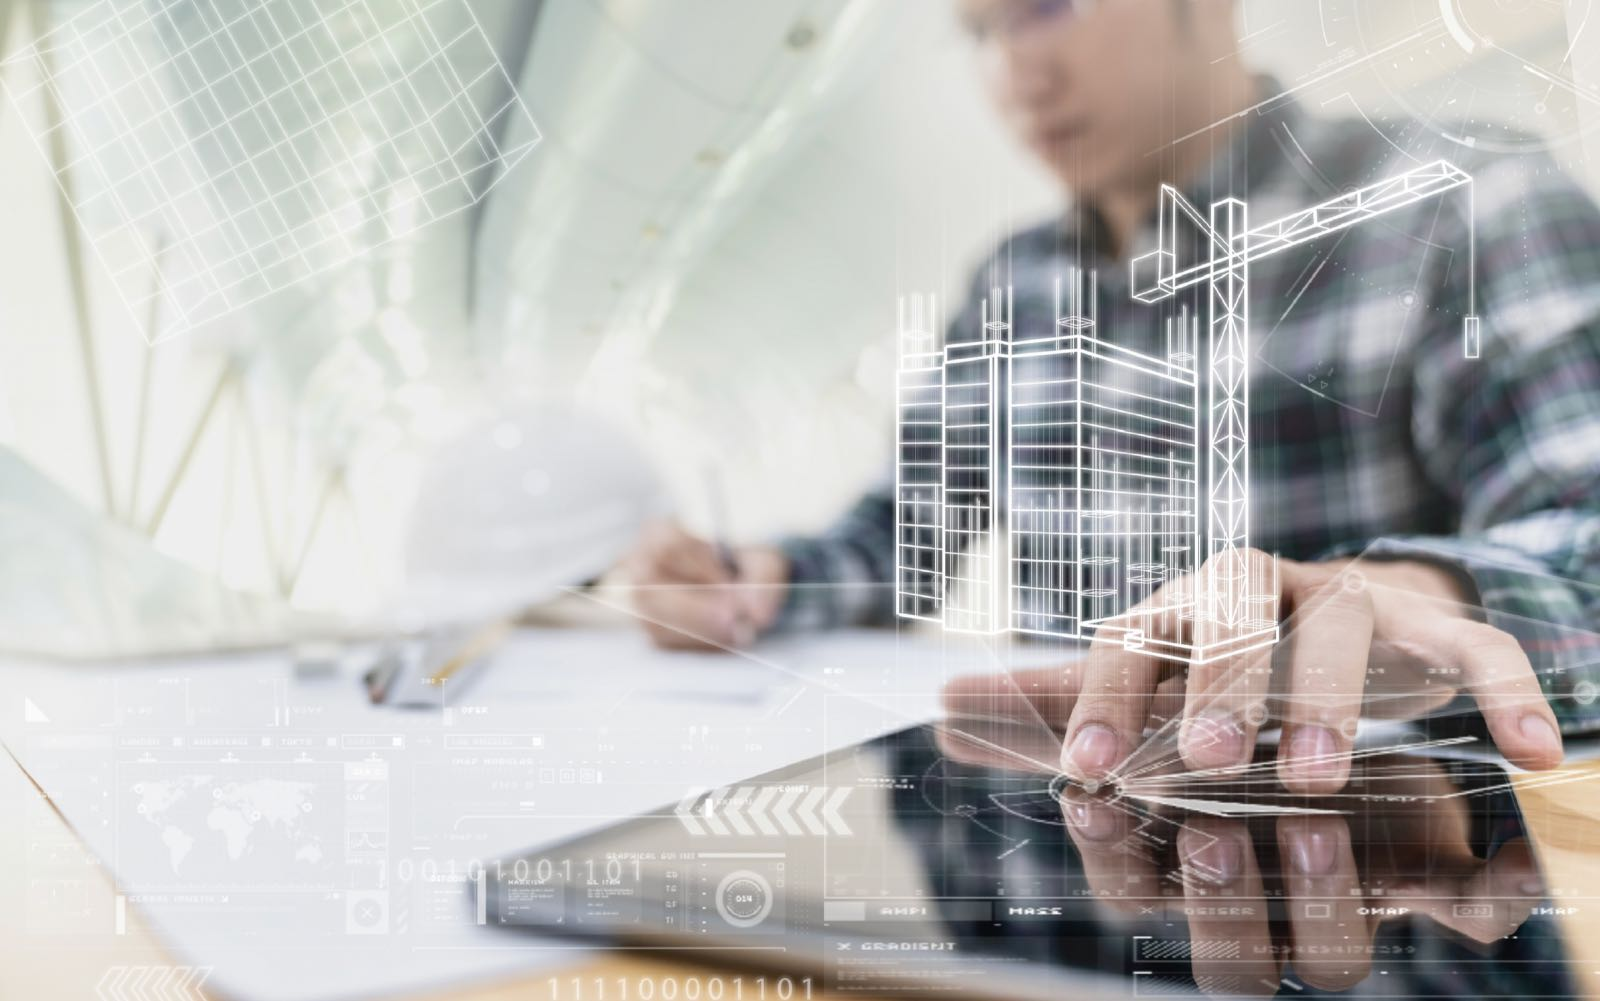 man using technology to work on construction plans